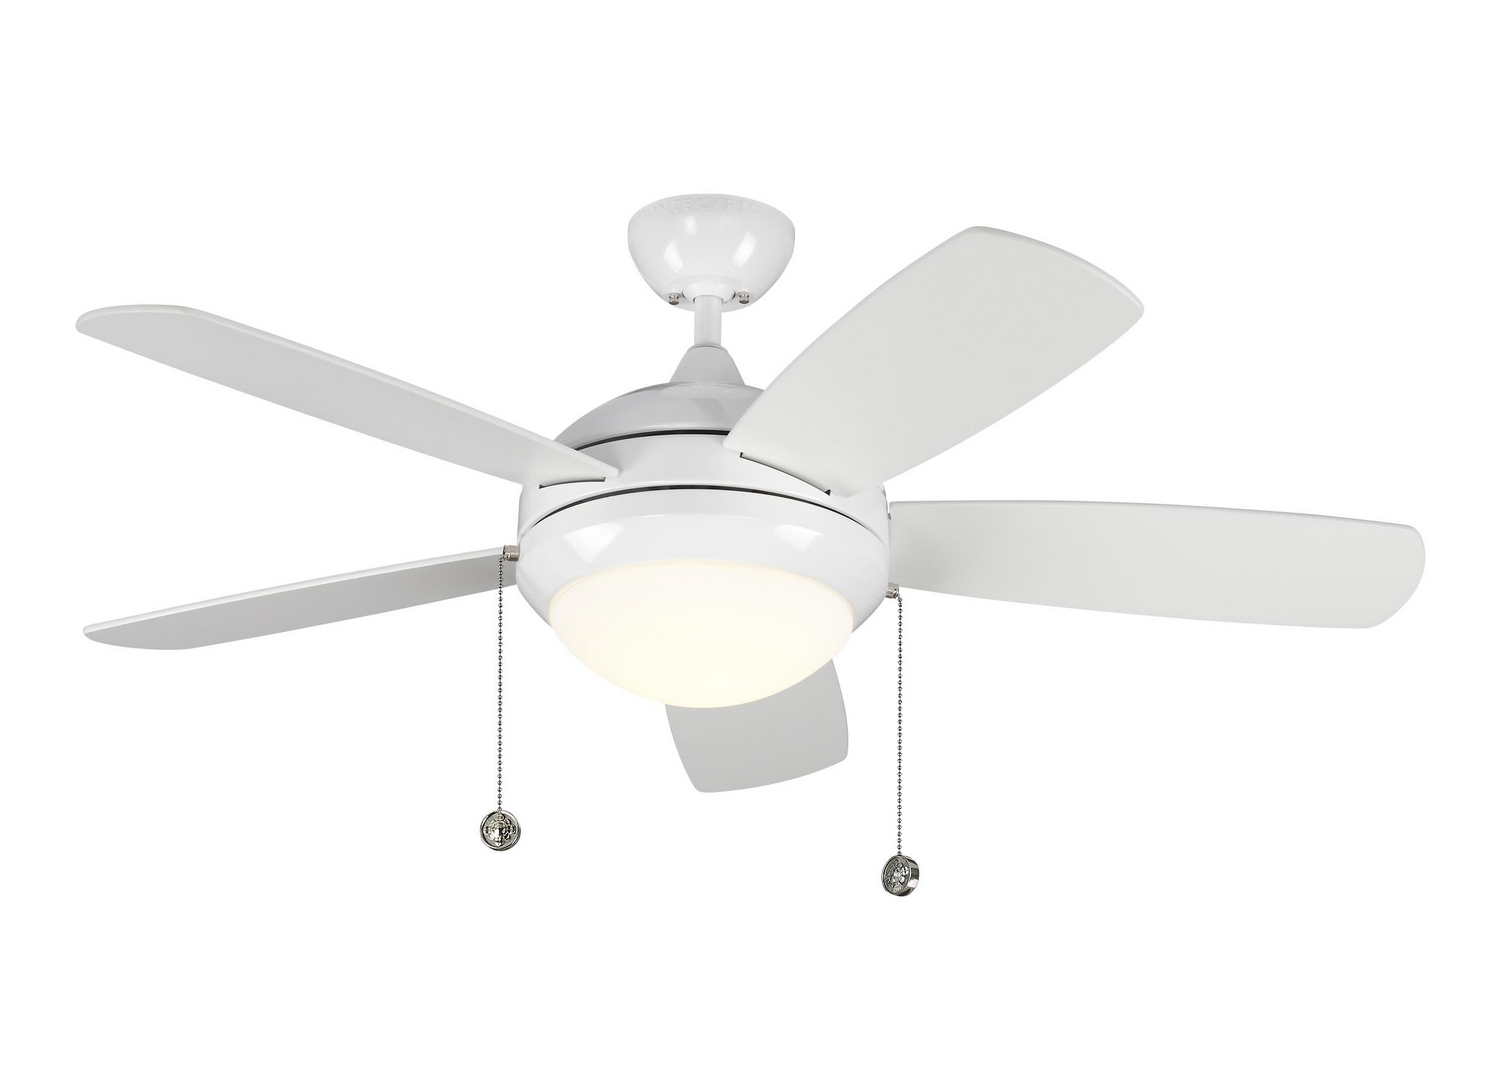 44 inch Ceiling Fan from the Discus Classic II collection by Monte Carlo 5DIC44WHD V1